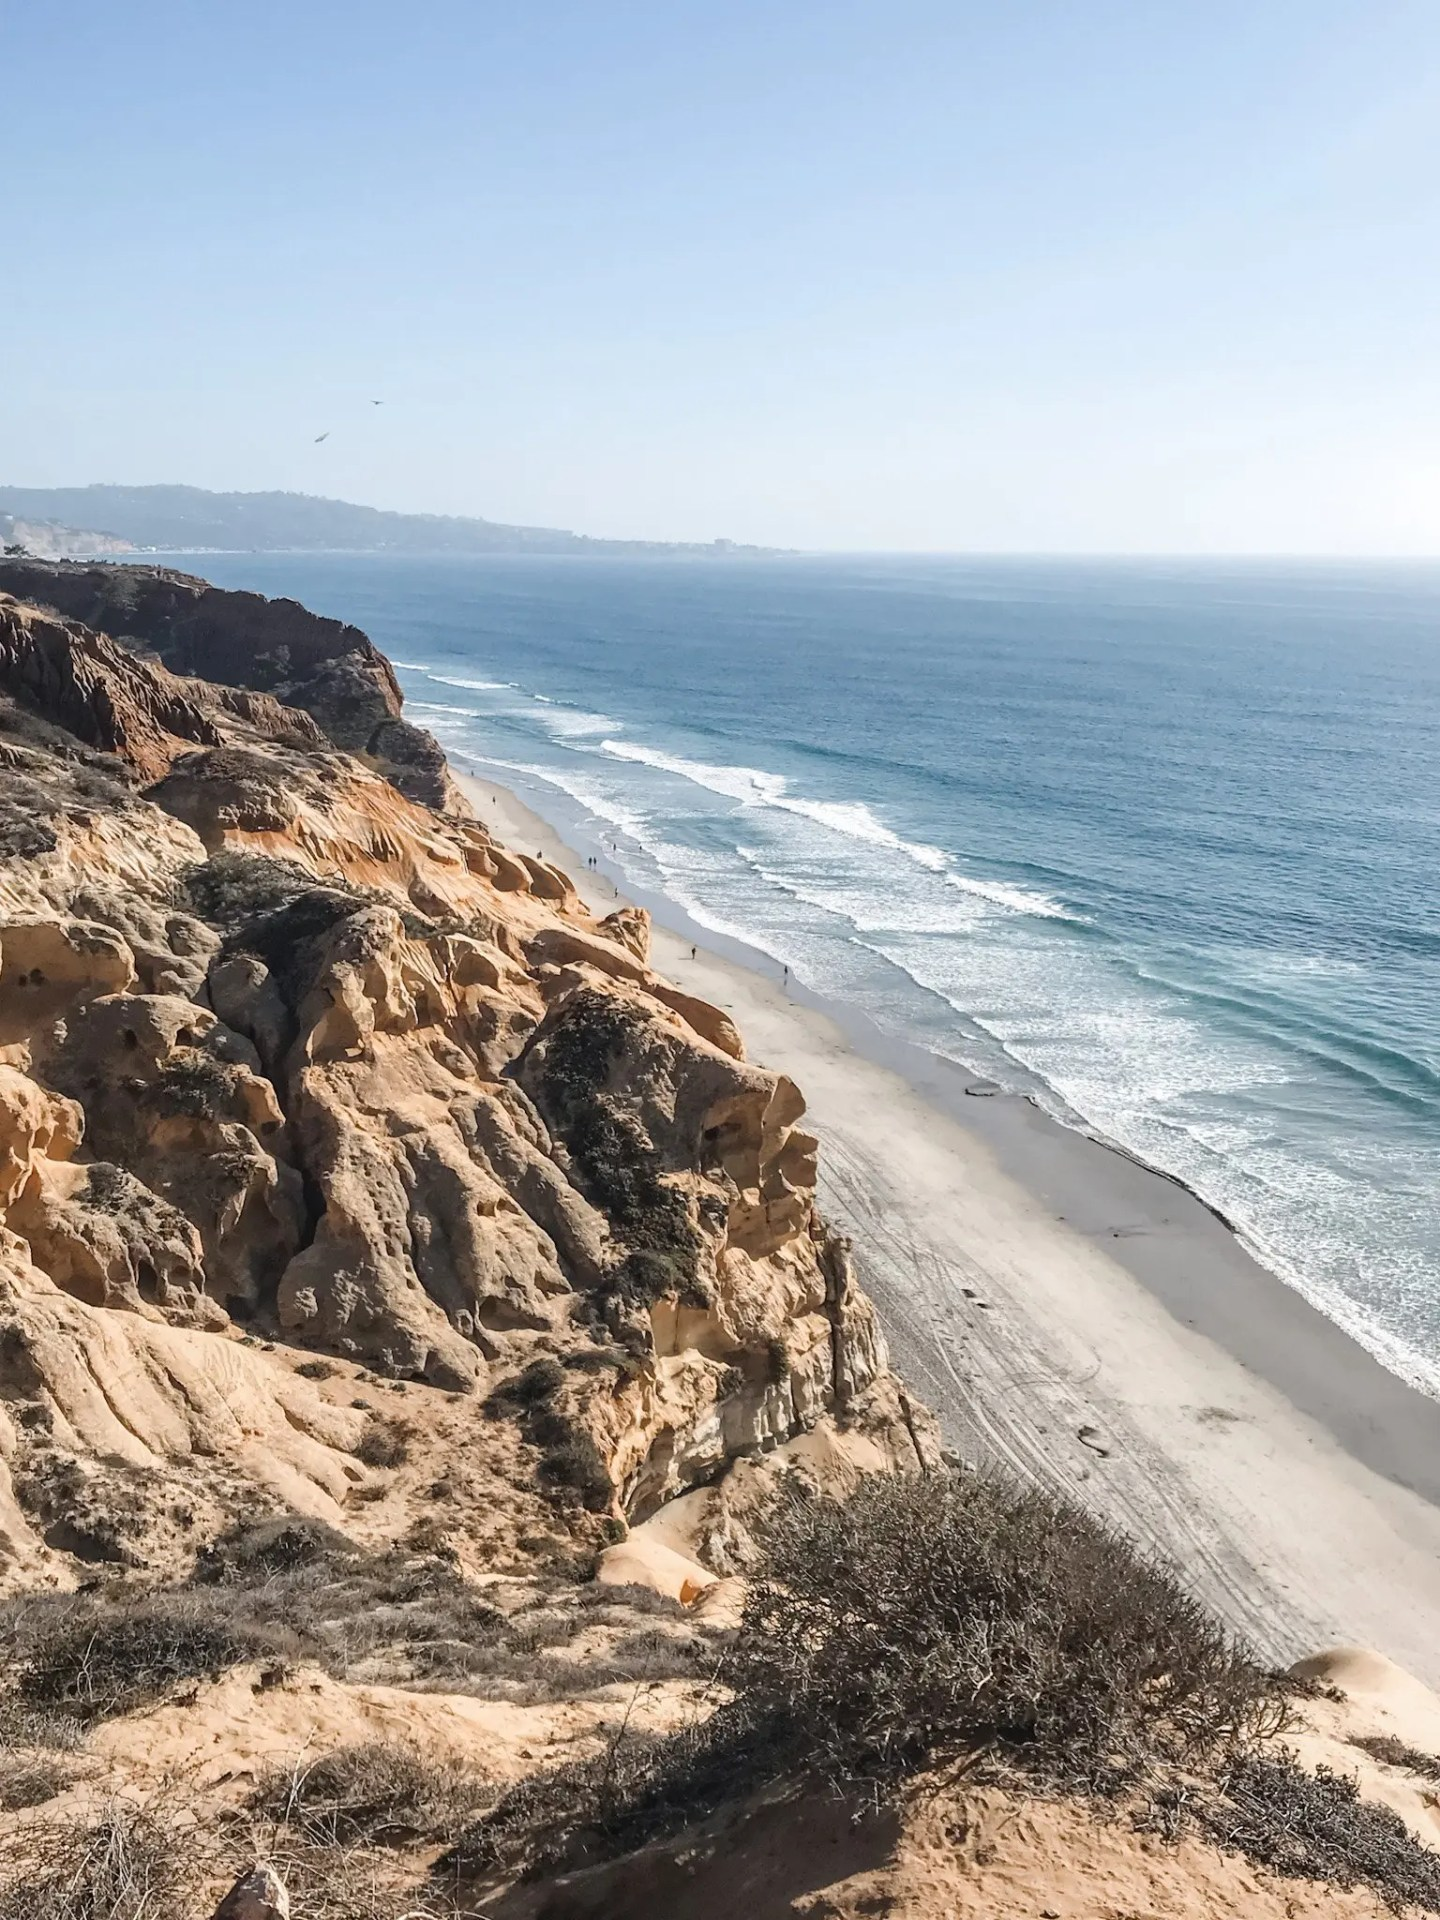 The best part of our California Road Trip to San Diego - the views from Torrey Pines State Reserve in San Diego.